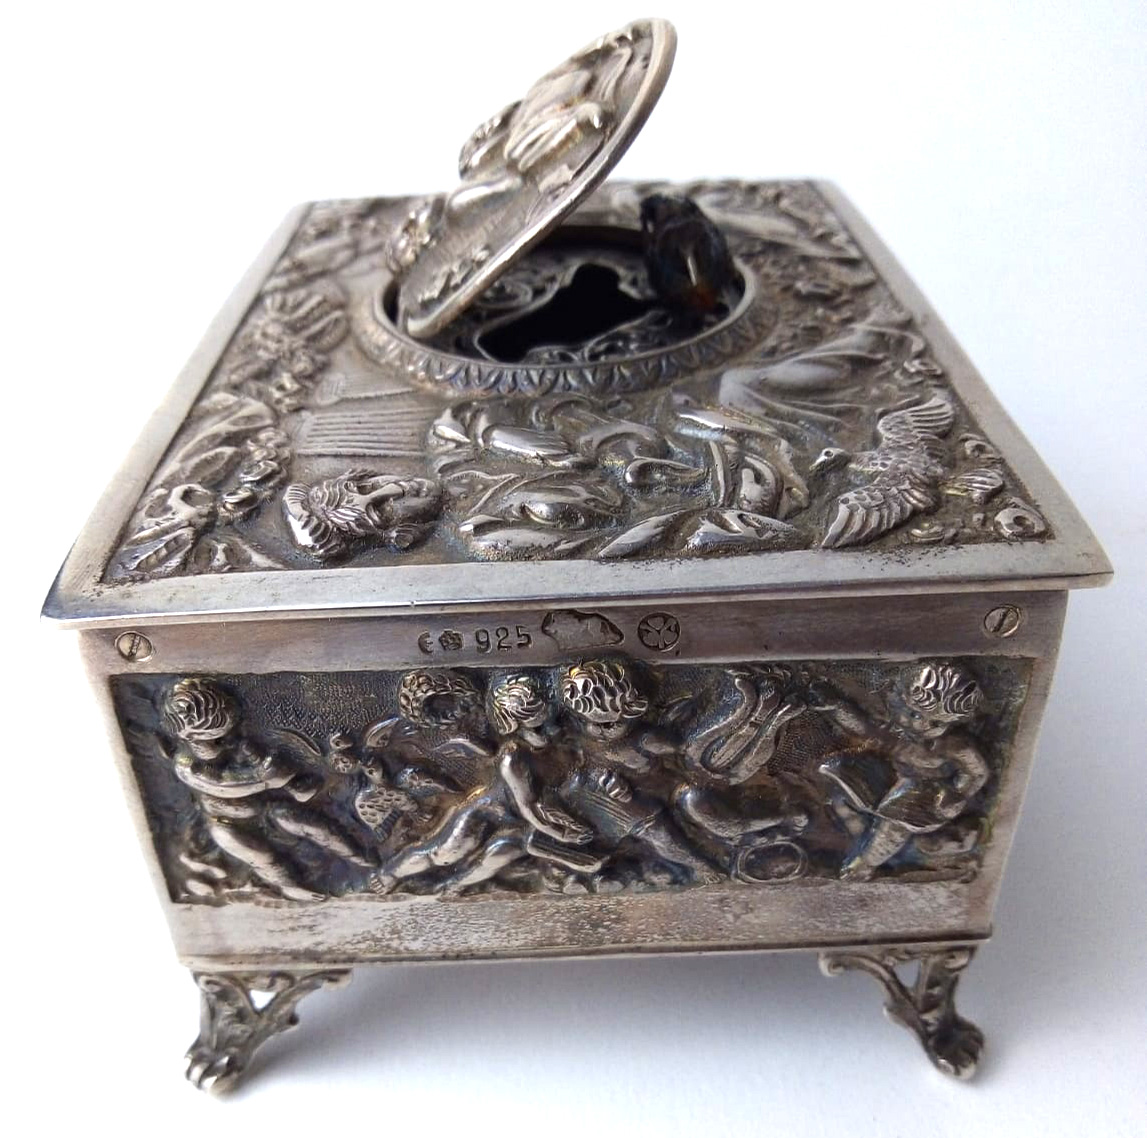 A LATE 19TH/EARLY 20TH CENTURY GERMAN SILVER SINGING BIRD MUSIC BOX Having embossed figural - Image 4 of 4